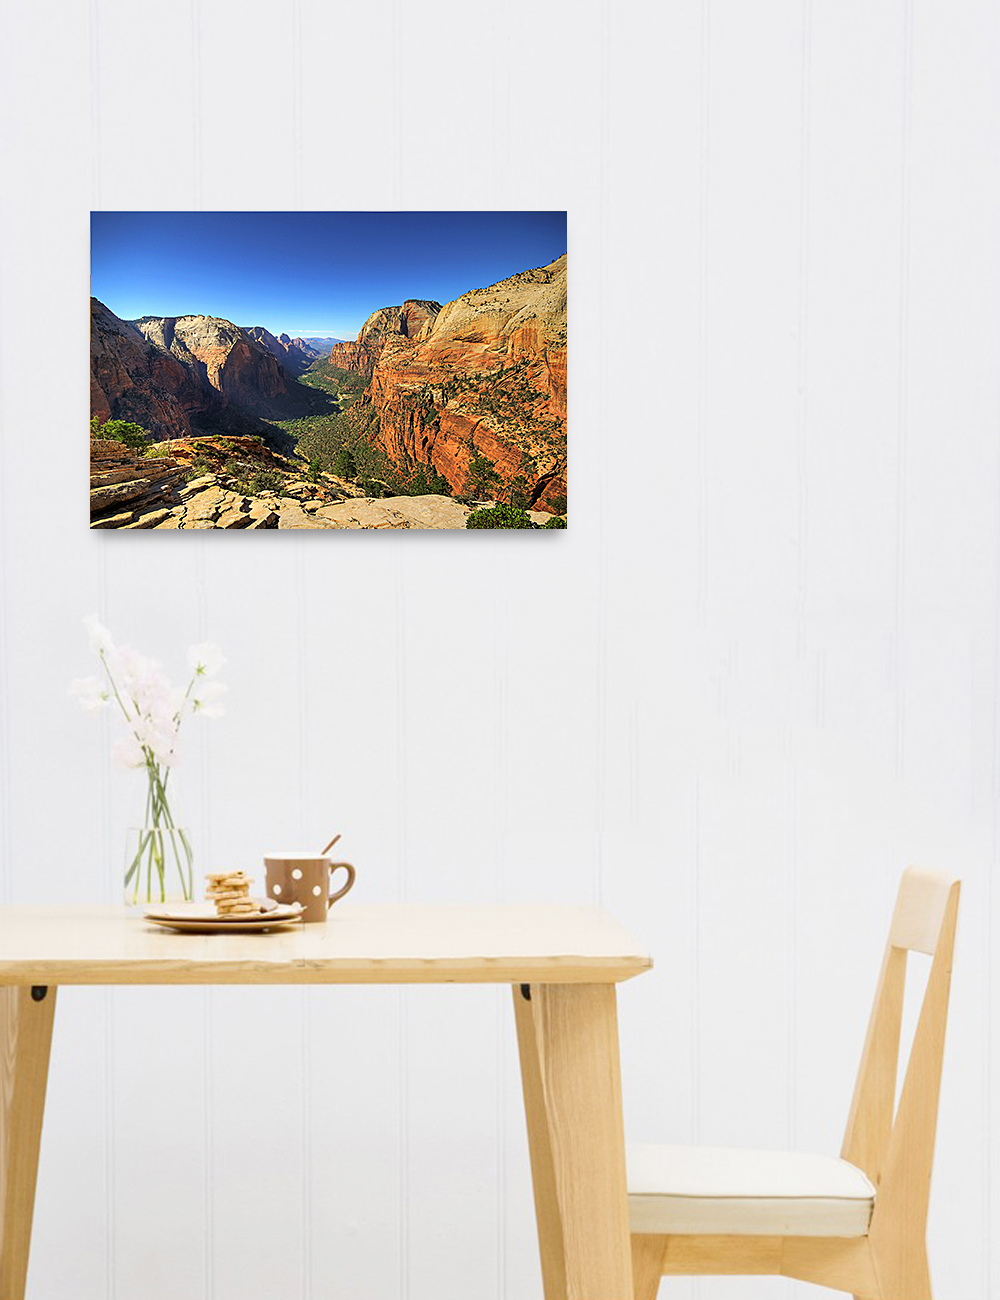 Details About Angel's Landing At Zion National Park, Utah. Giclee Canvas  Prints For Wall Decor with Landing Art Wall Decor (Image 9 of 30)